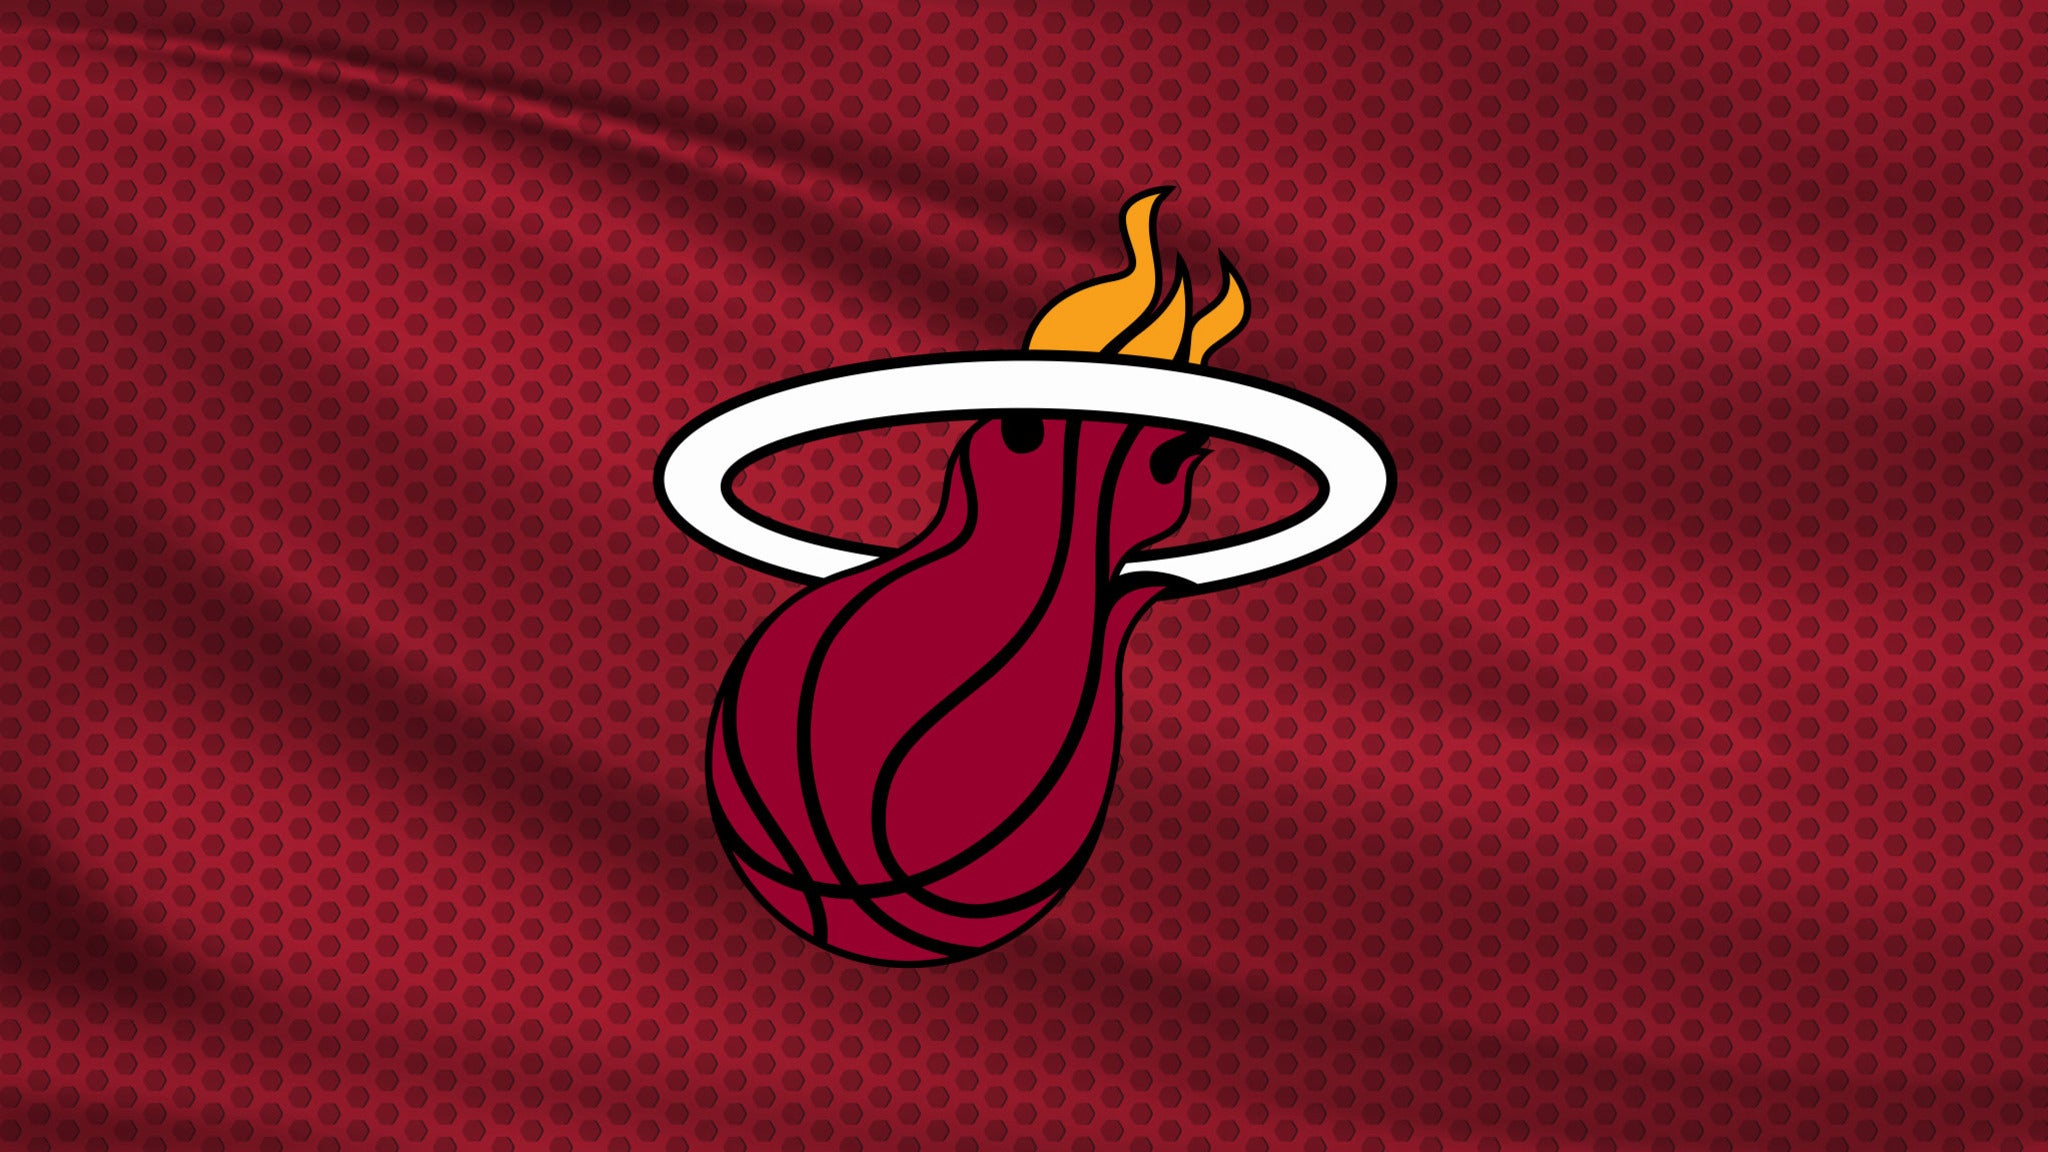 Image used with permission from Ticketmaster | Miami Heat vs. Washington Wizards tickets